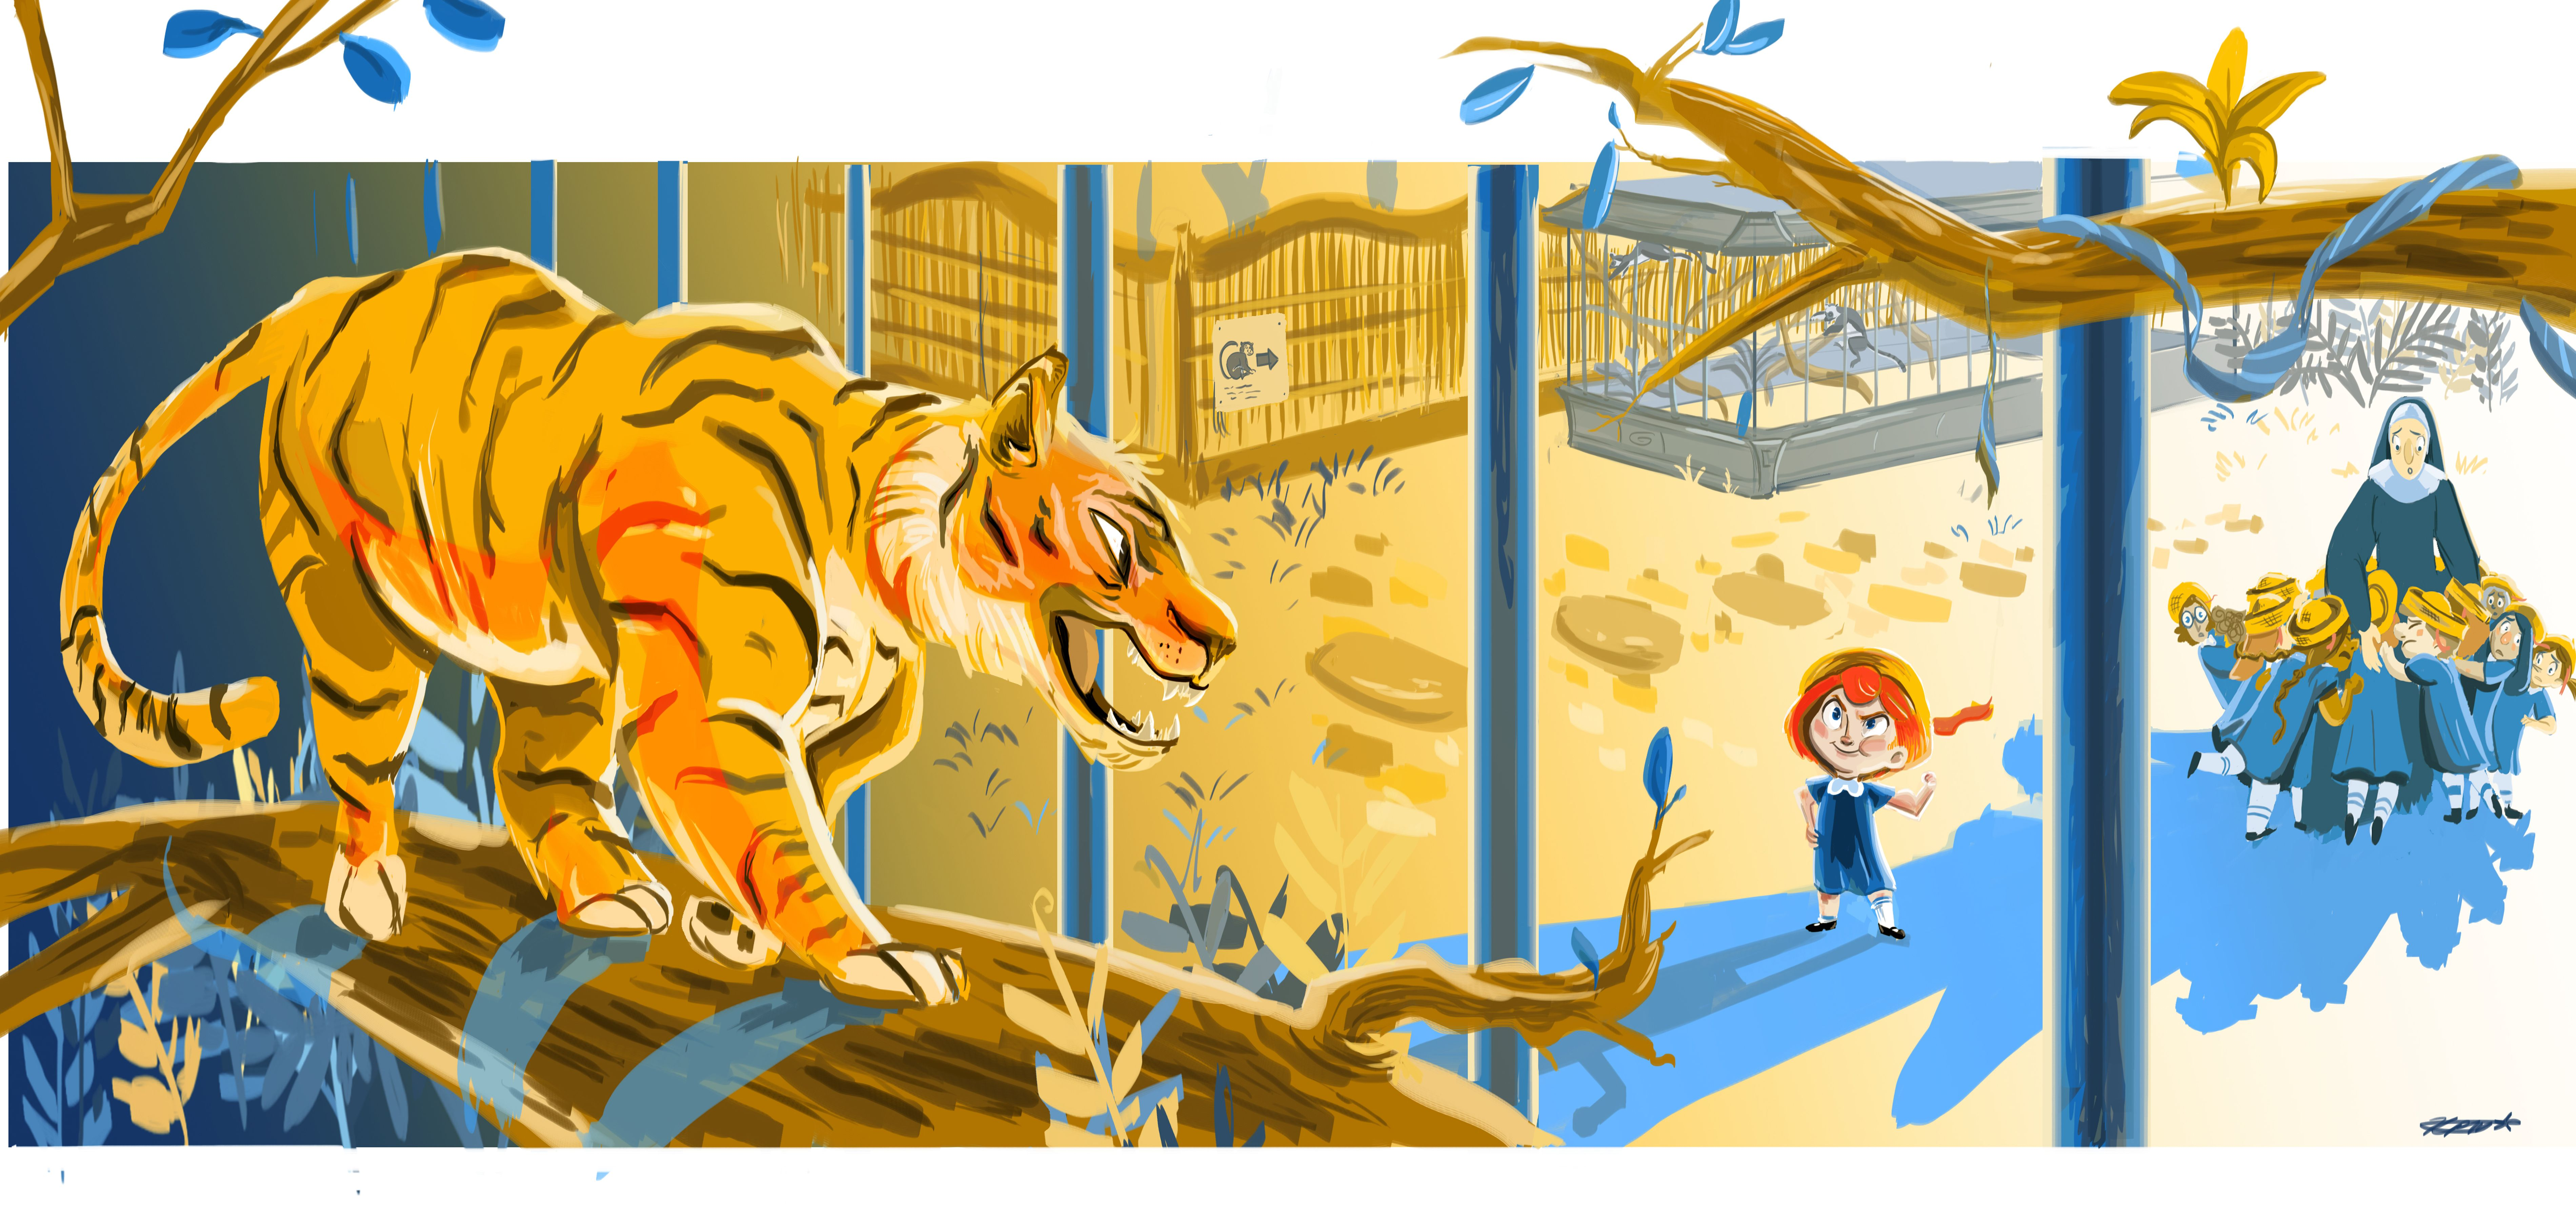 To the tiger in the zoo, Madeline just said Poo Poo. Kristen Maslanka Visual Development http://buttermilkdoodles.tumblr.com/